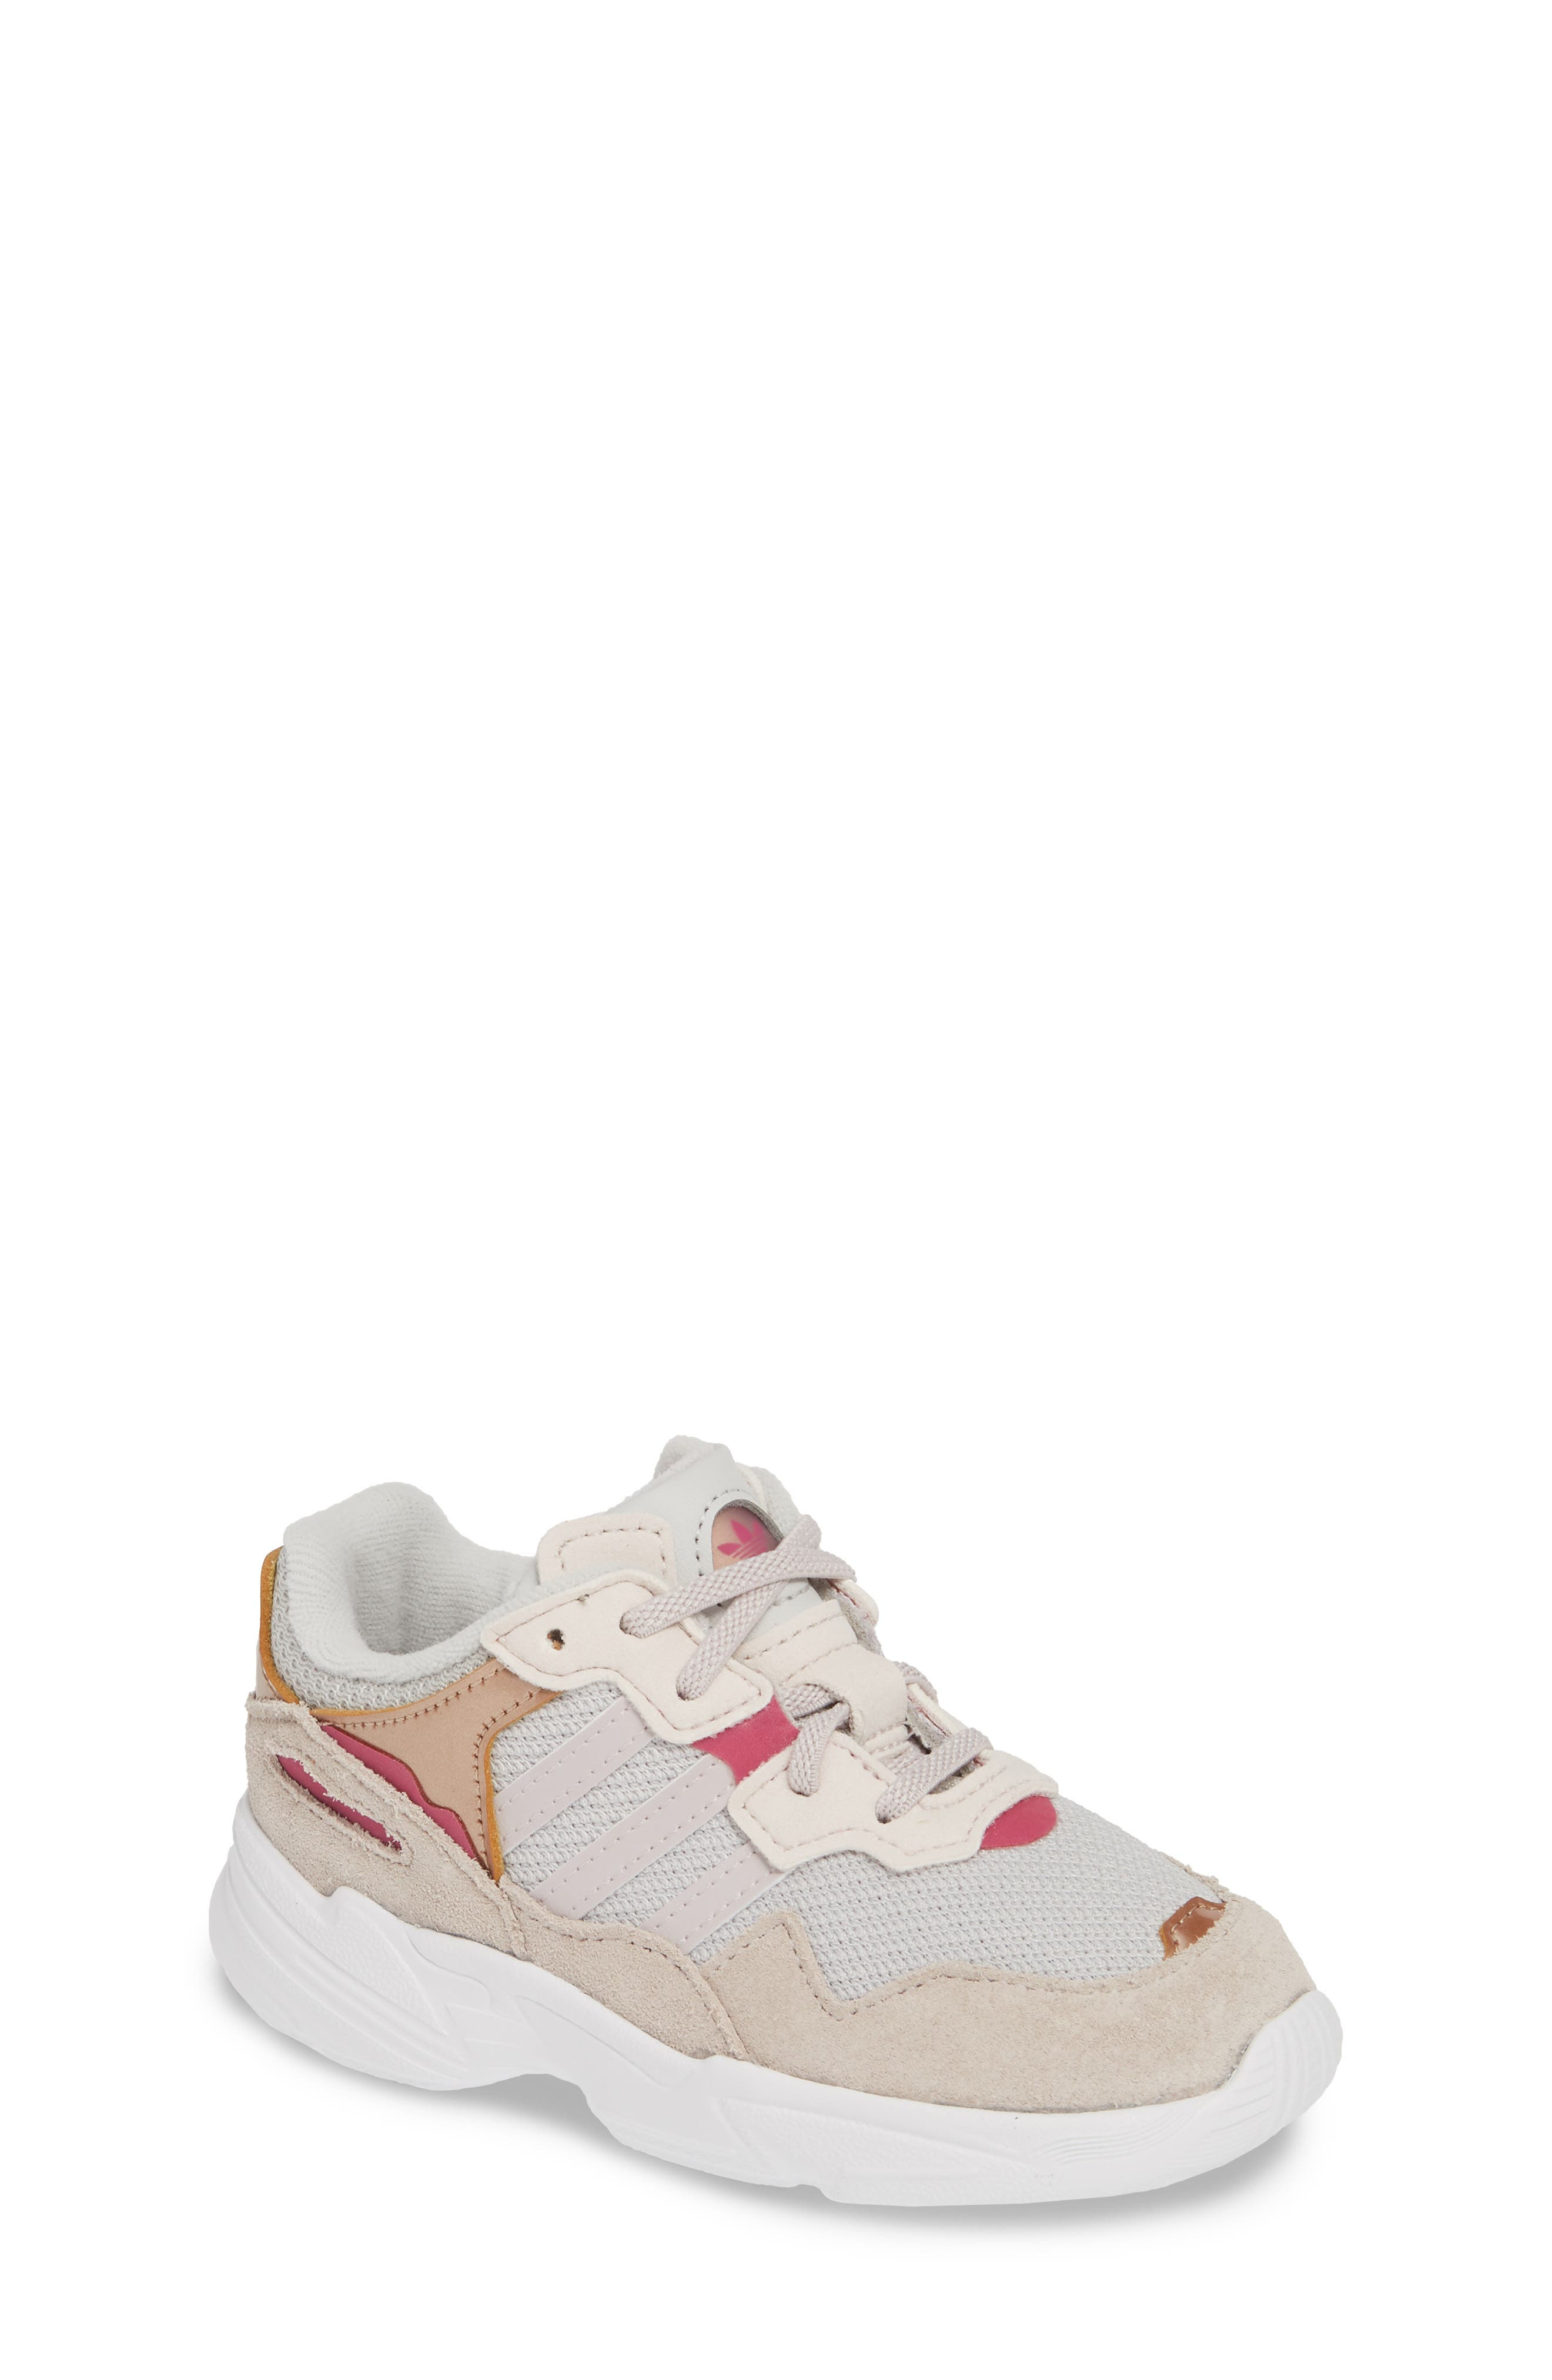 Yung-96 Sneaker,                             Main thumbnail 1, color,                             GREY TWO/ ORCHID/ TRUE PINK